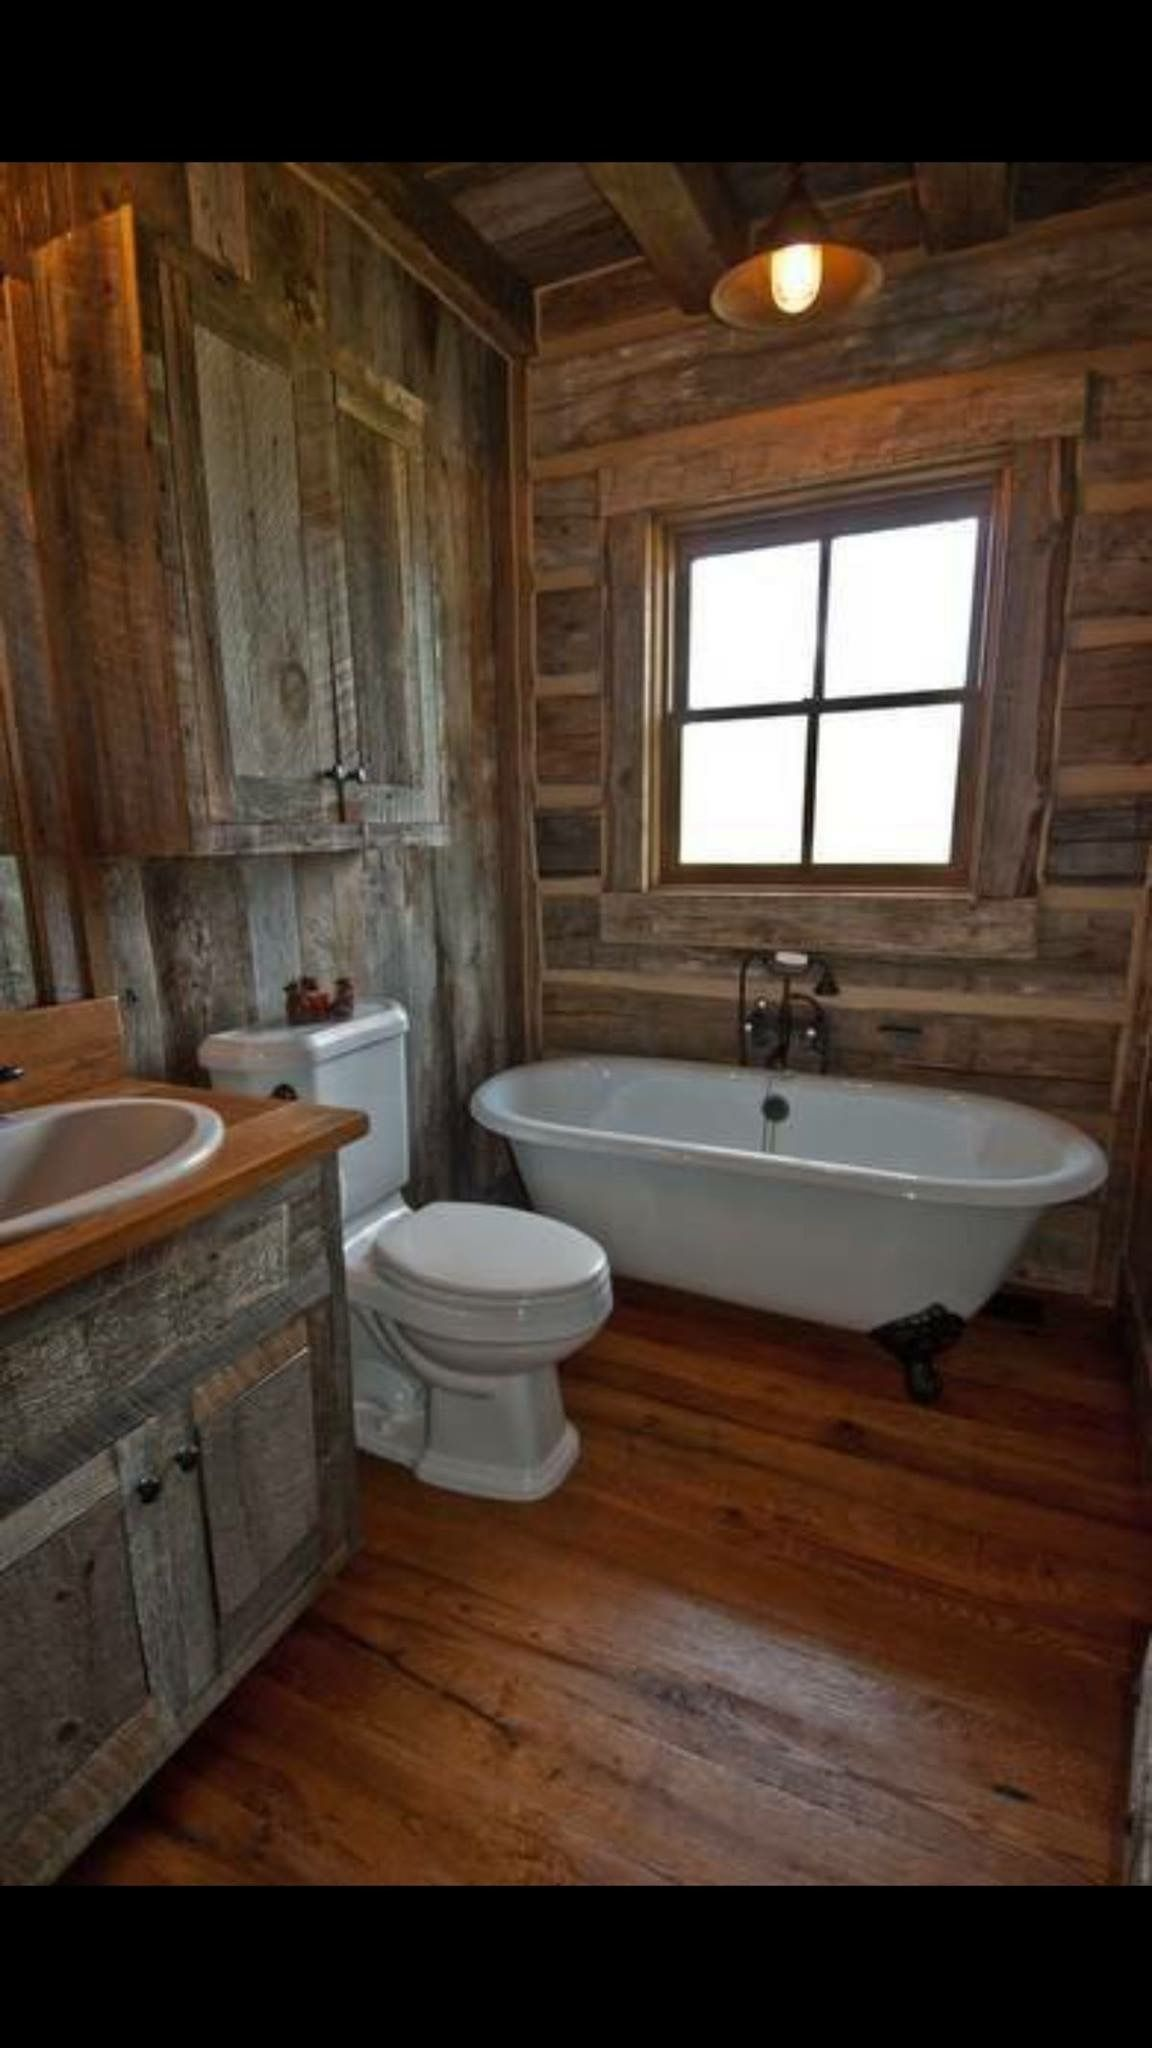 rustic bath cabin sweet cabin pinterest badezimmer waschbecken waschbecken und badezimmer. Black Bedroom Furniture Sets. Home Design Ideas